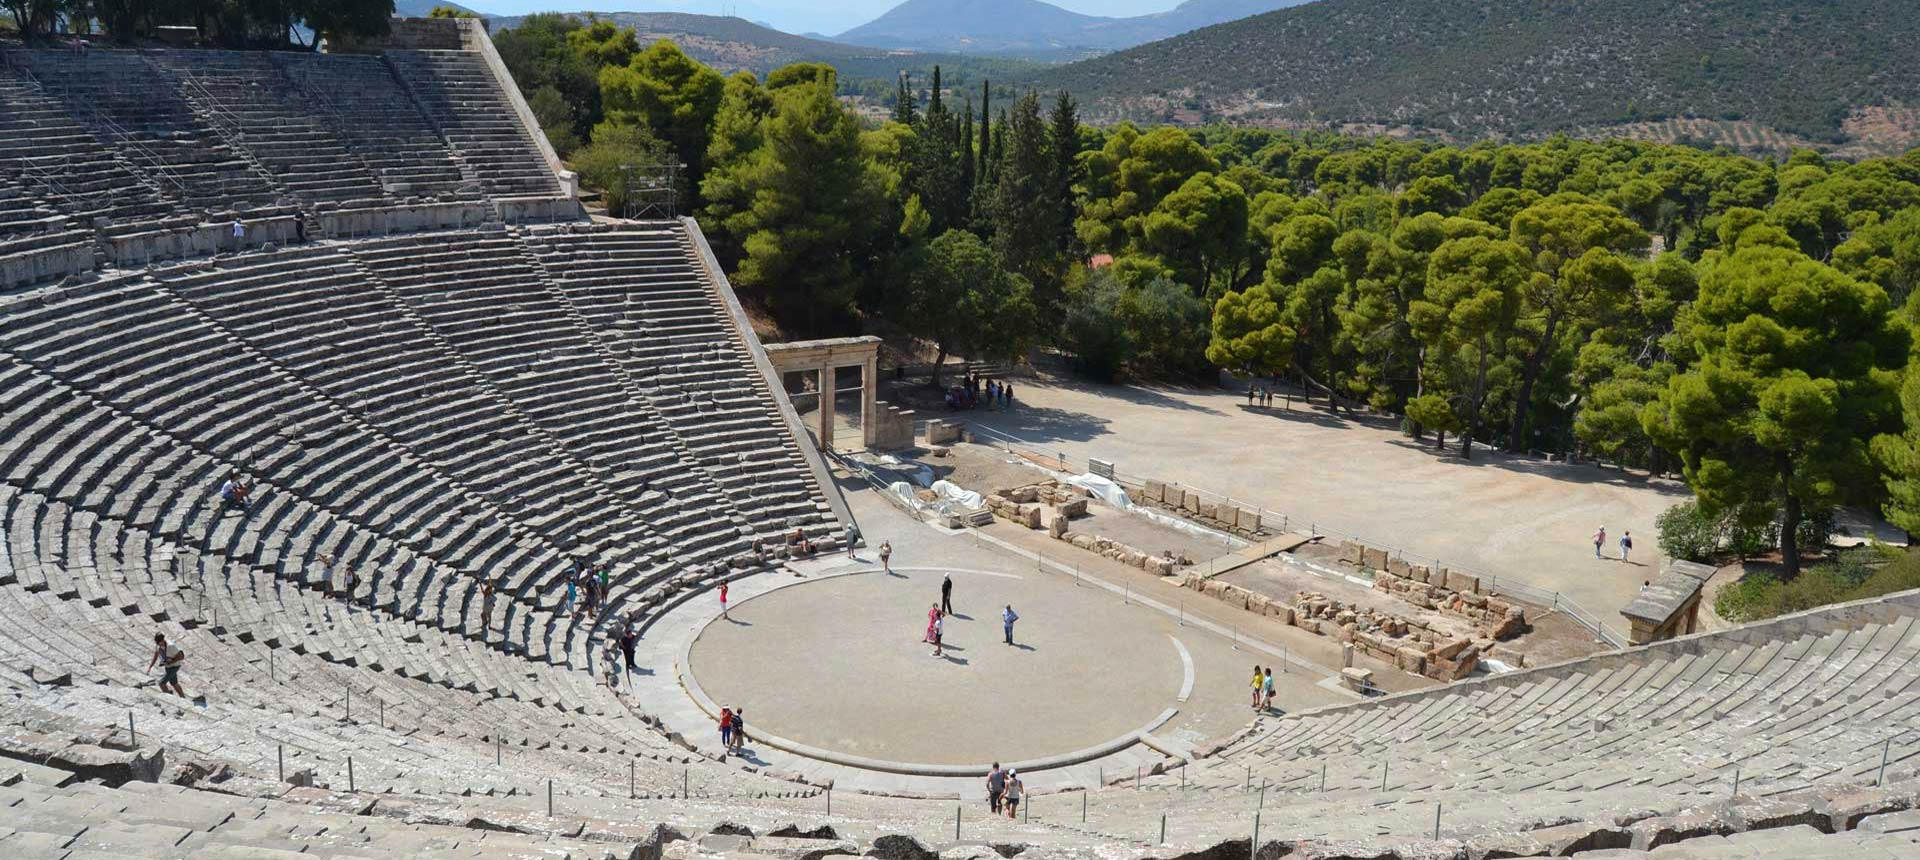 Mycenae & Epidaurus (day trip from Athens)